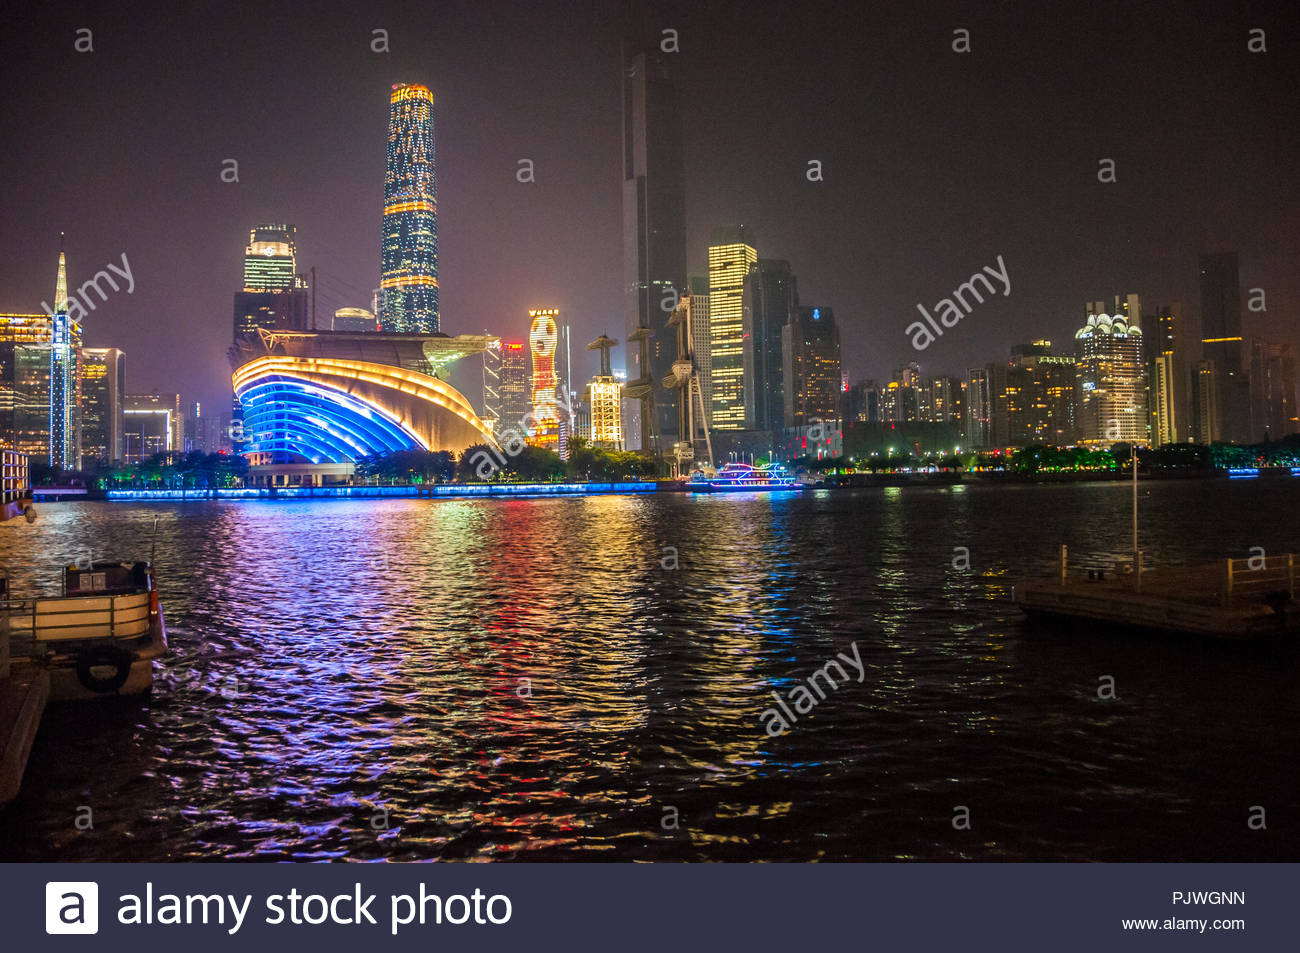 View over the Pearl River to the Zhujiang New Town area, showing the opera house ifc and ifp buildings - Stock Image